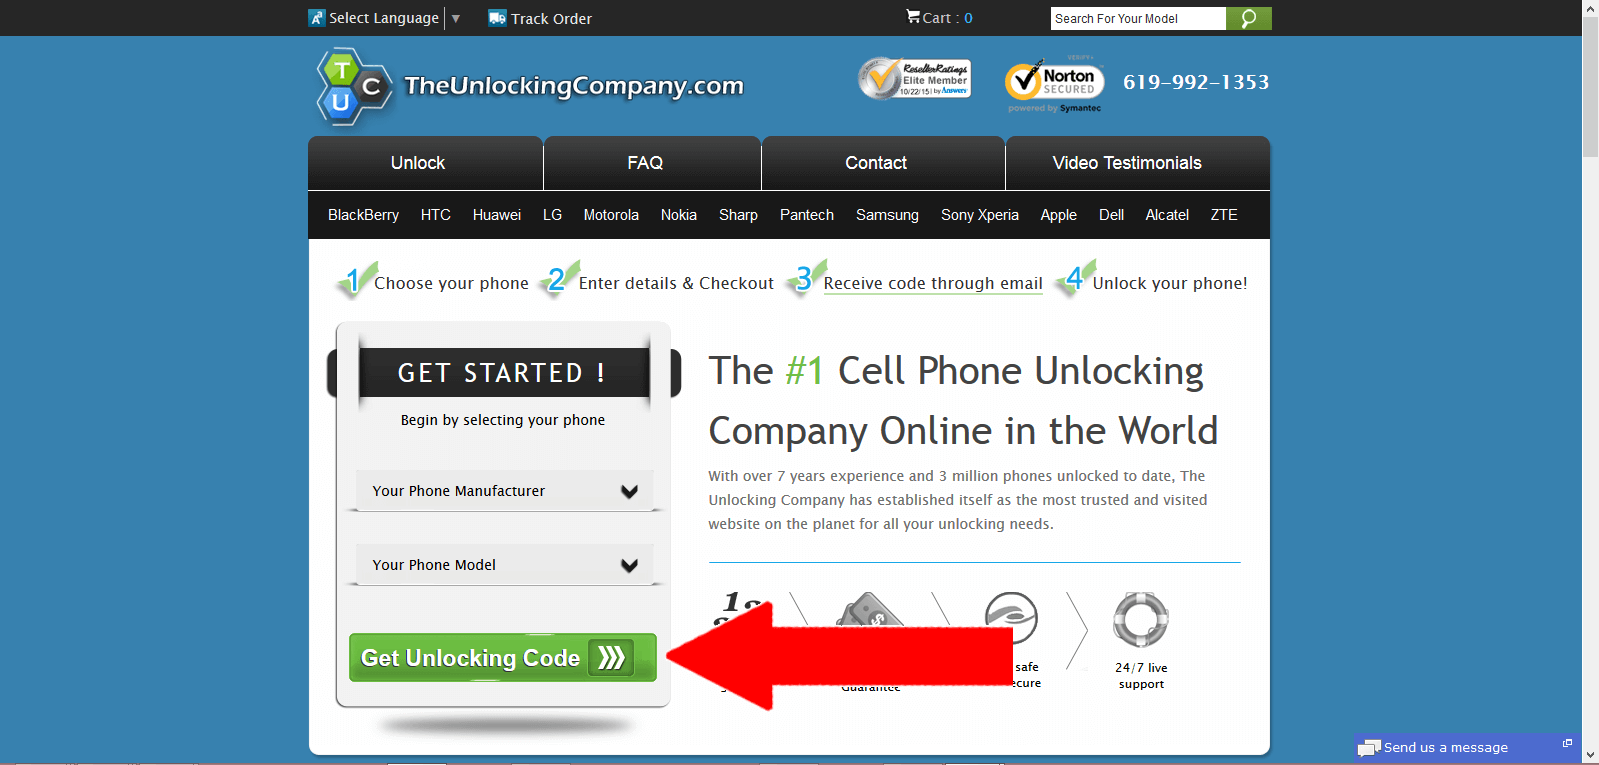 unlocking-company-main-page